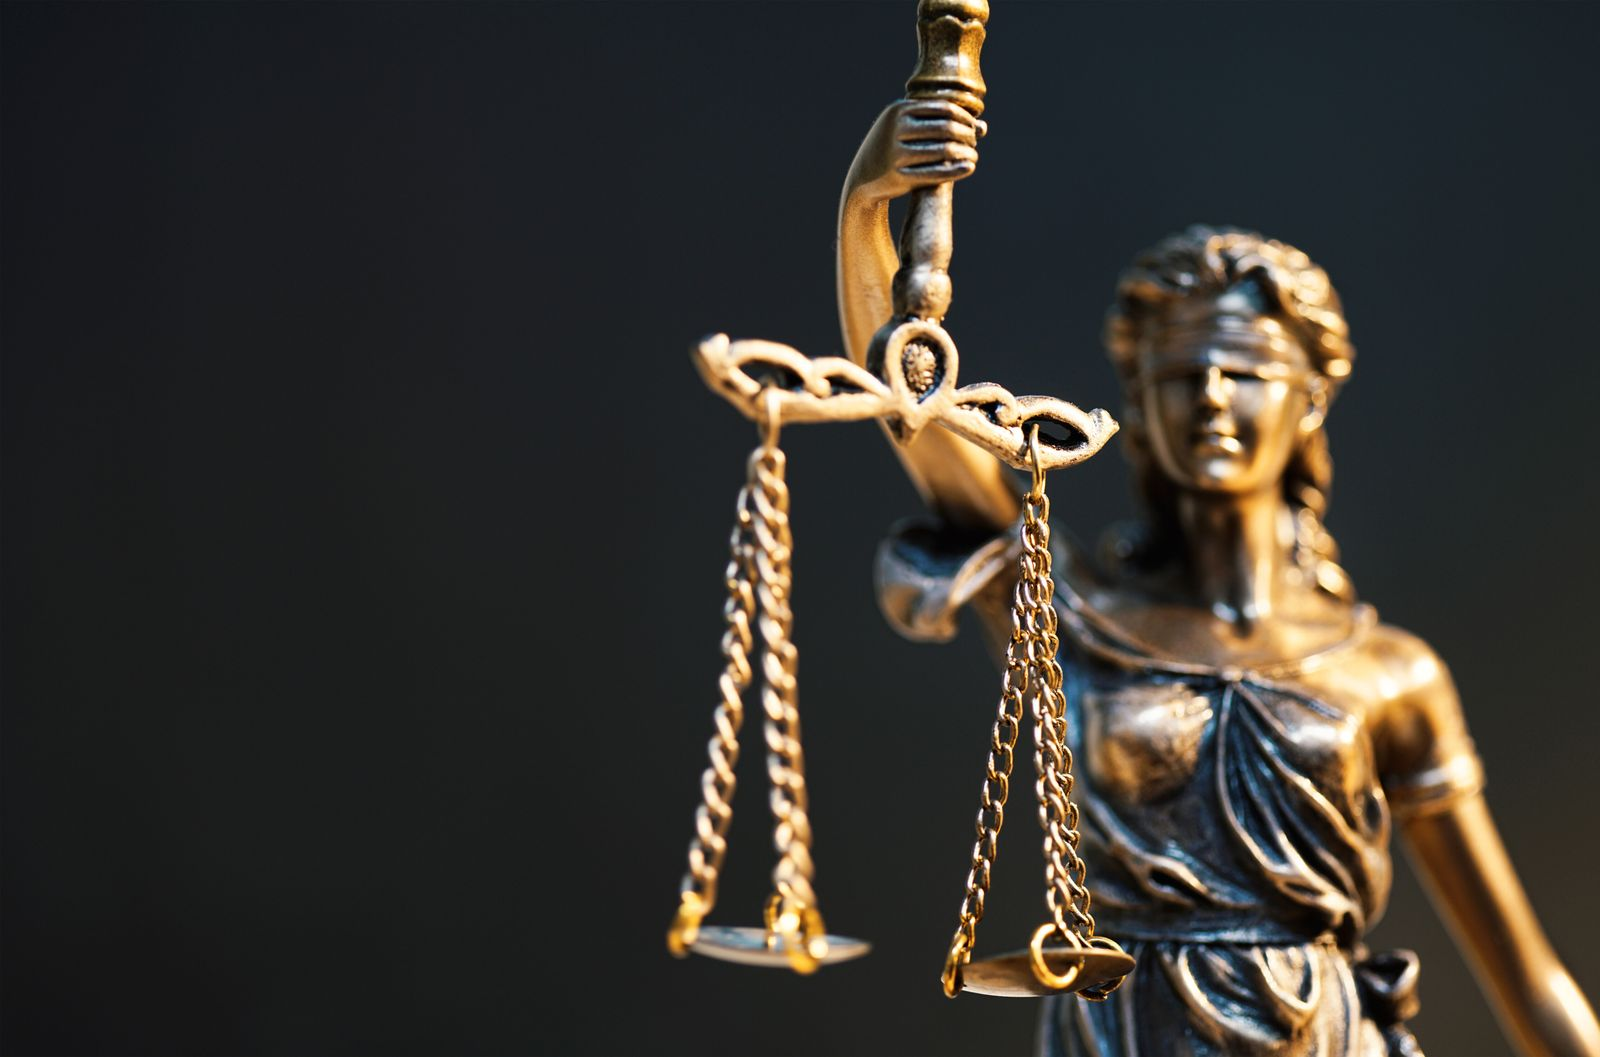 The Statue of Justice - lady justice or Iustitia / Justitia the Roman goddess of Justice (audioundwerbung)